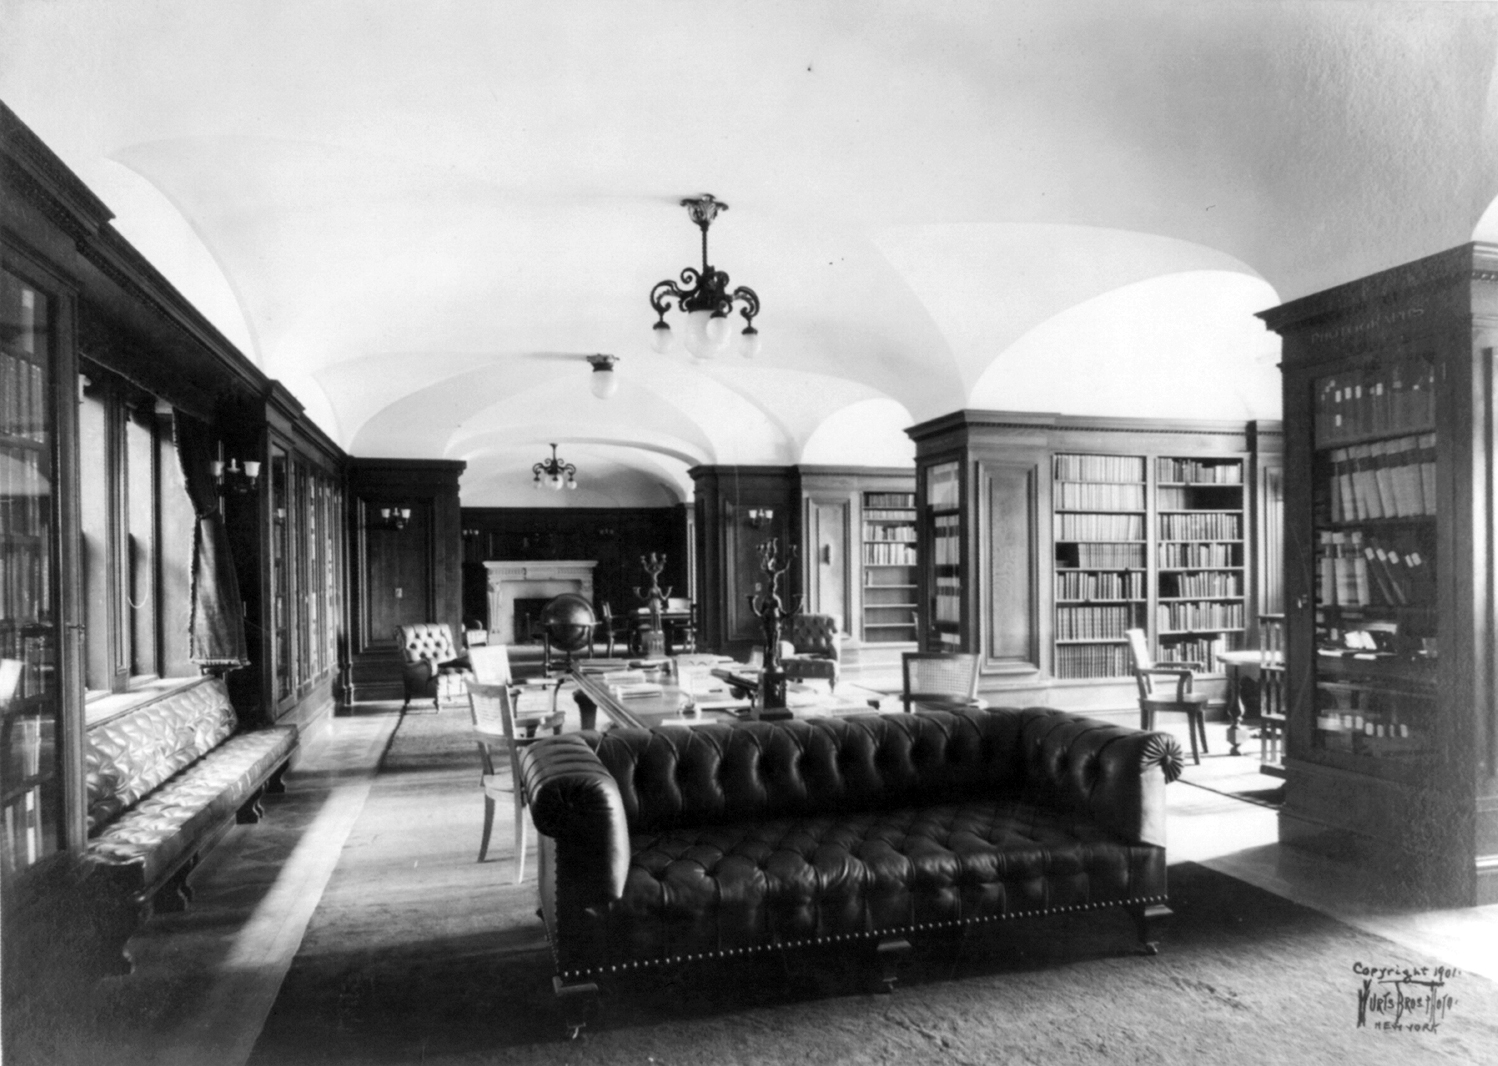 Black and white picture of the interior of a library. There are multiple bookshelves, couches, chairs, and candelabra.